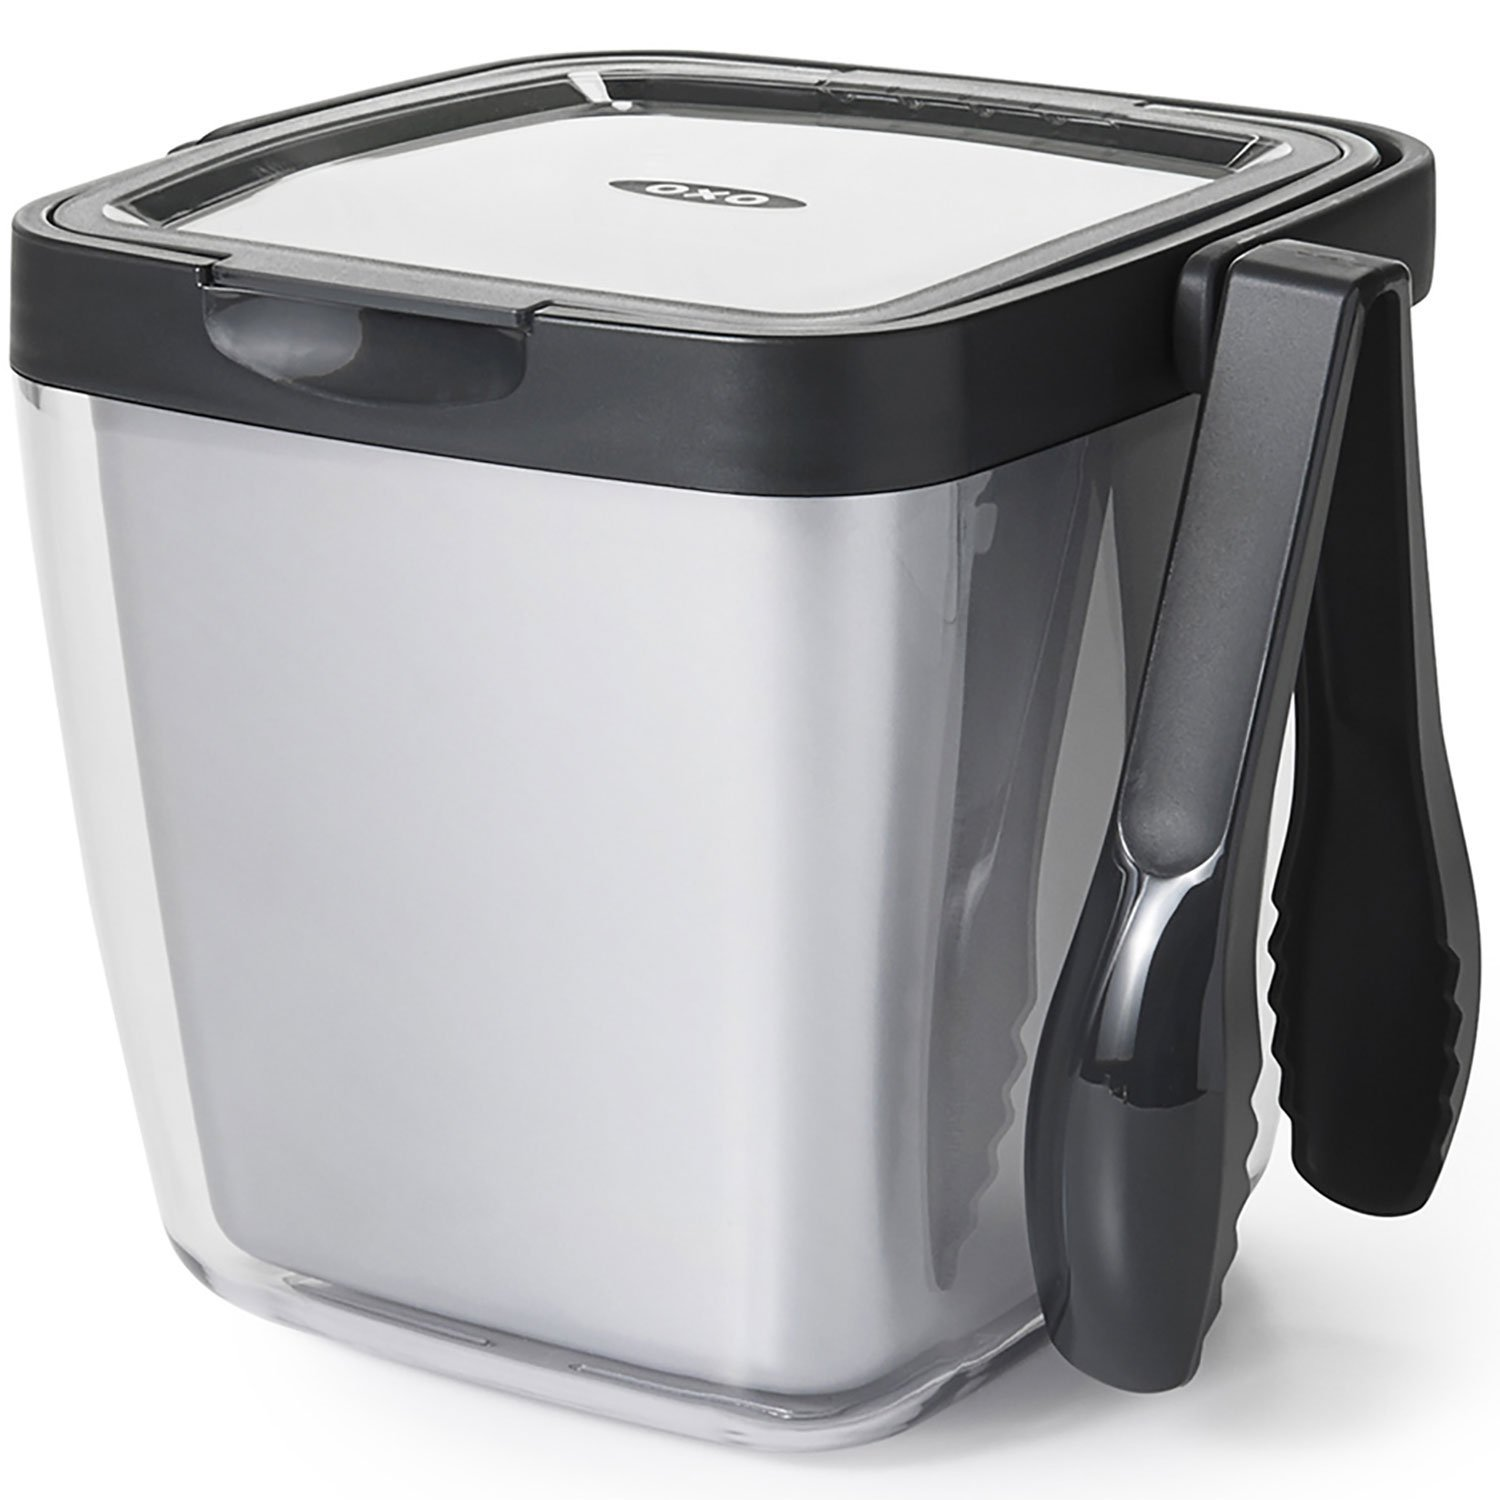 3. OXO Good Grips Double Wall Ice Bucket